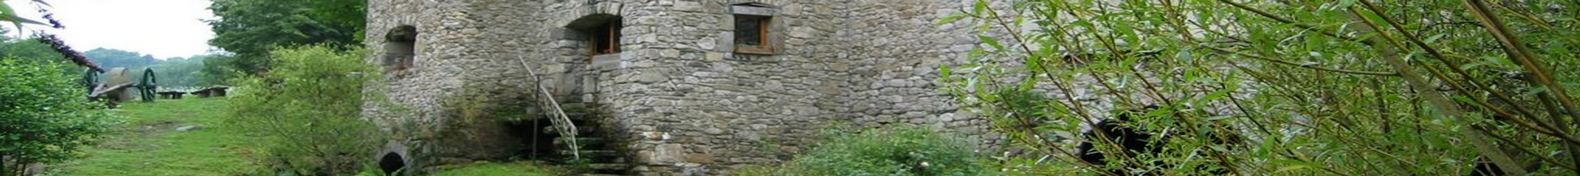 The Record Water Mill cottages and B&B in mystical Sidobre (Occitania - Southern France)